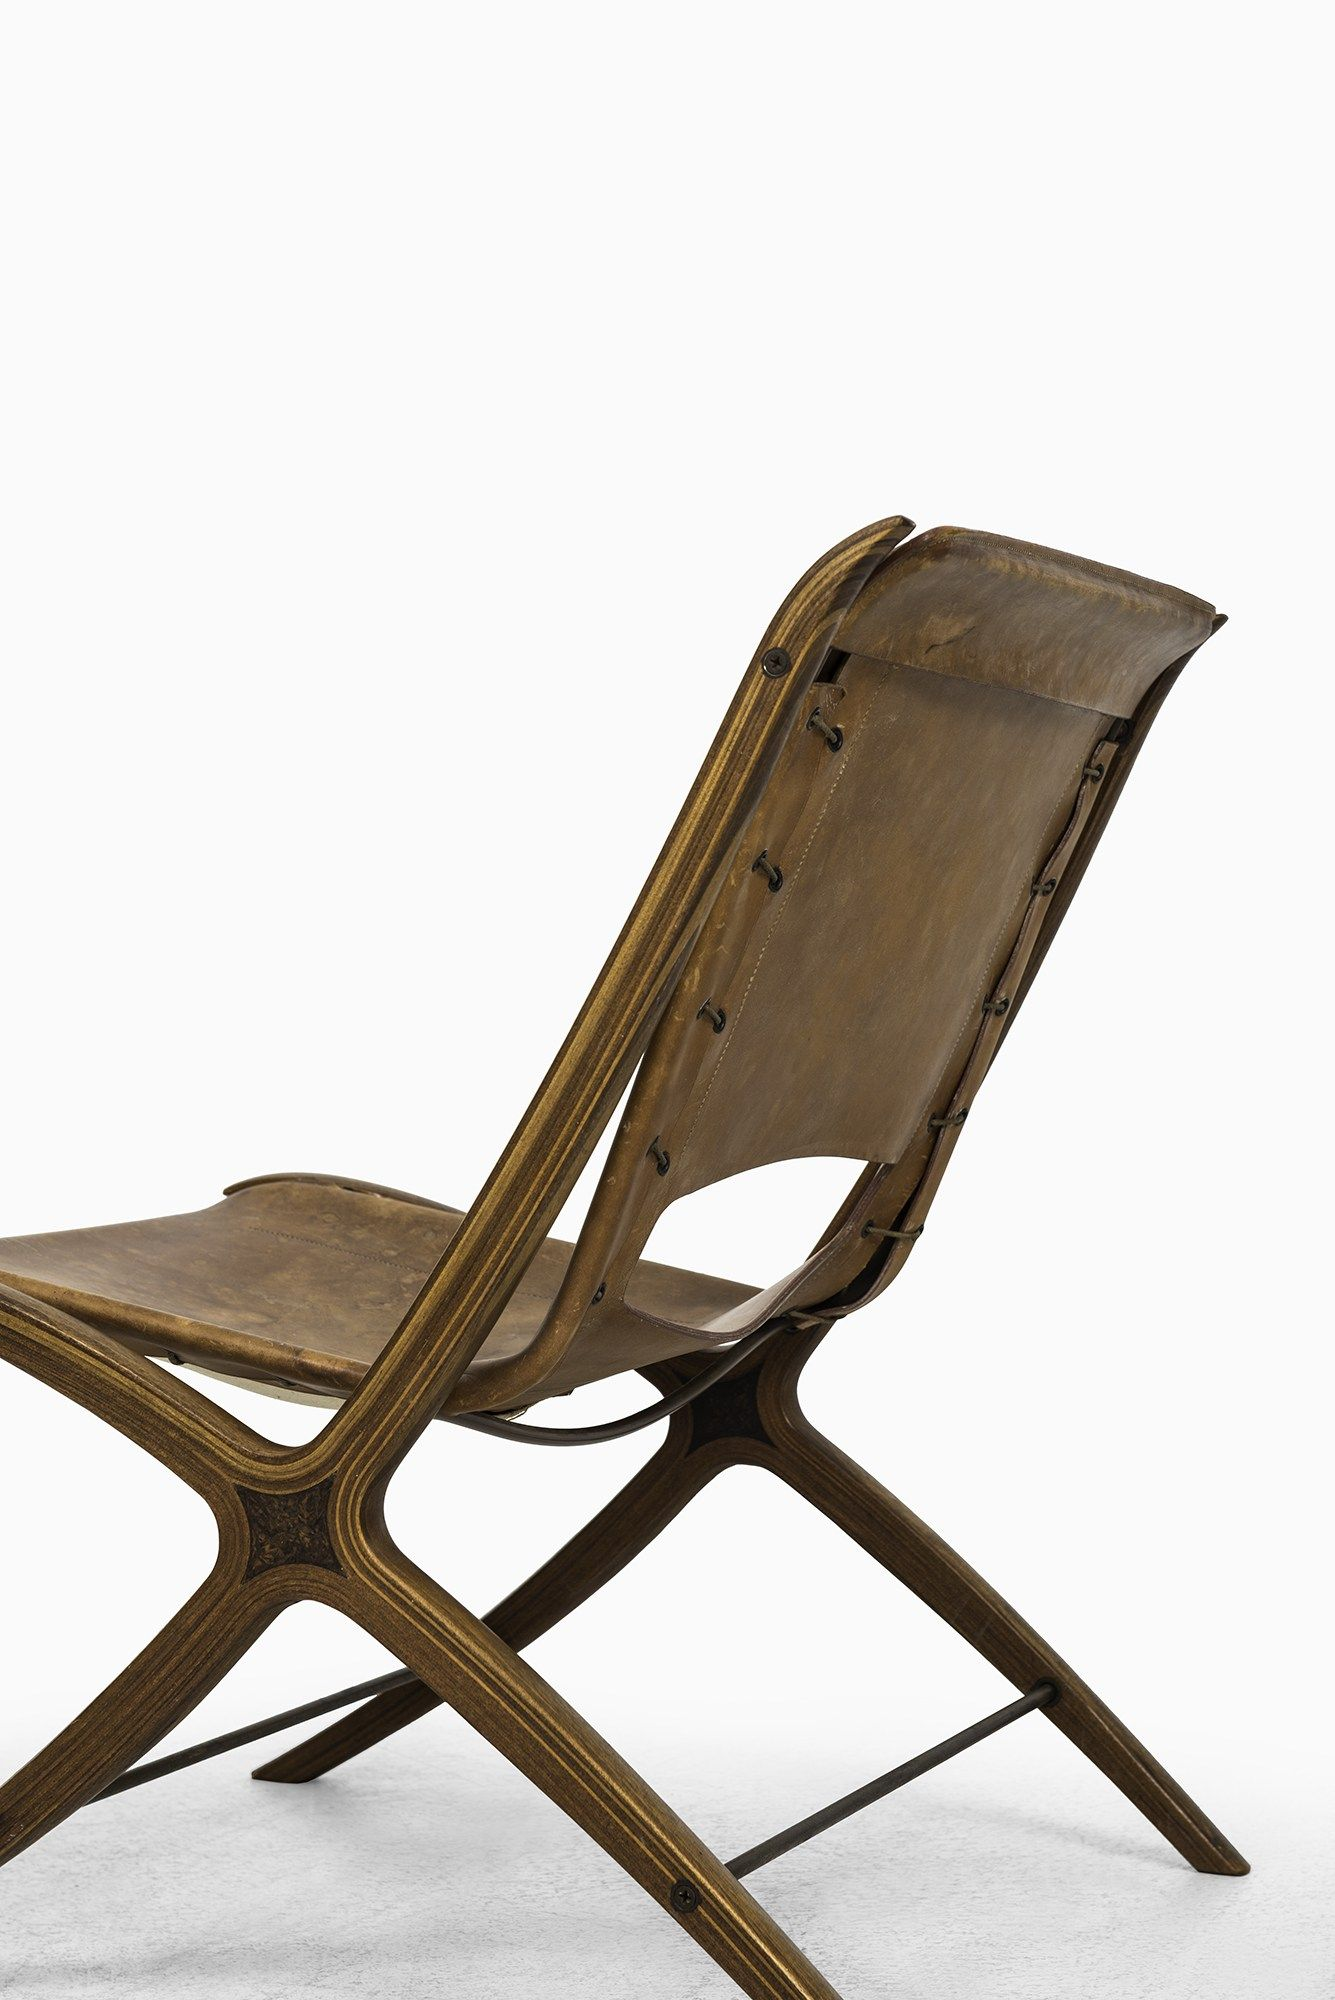 Rare easy chair model FH 6135 X chair designed by Peter Hvidt